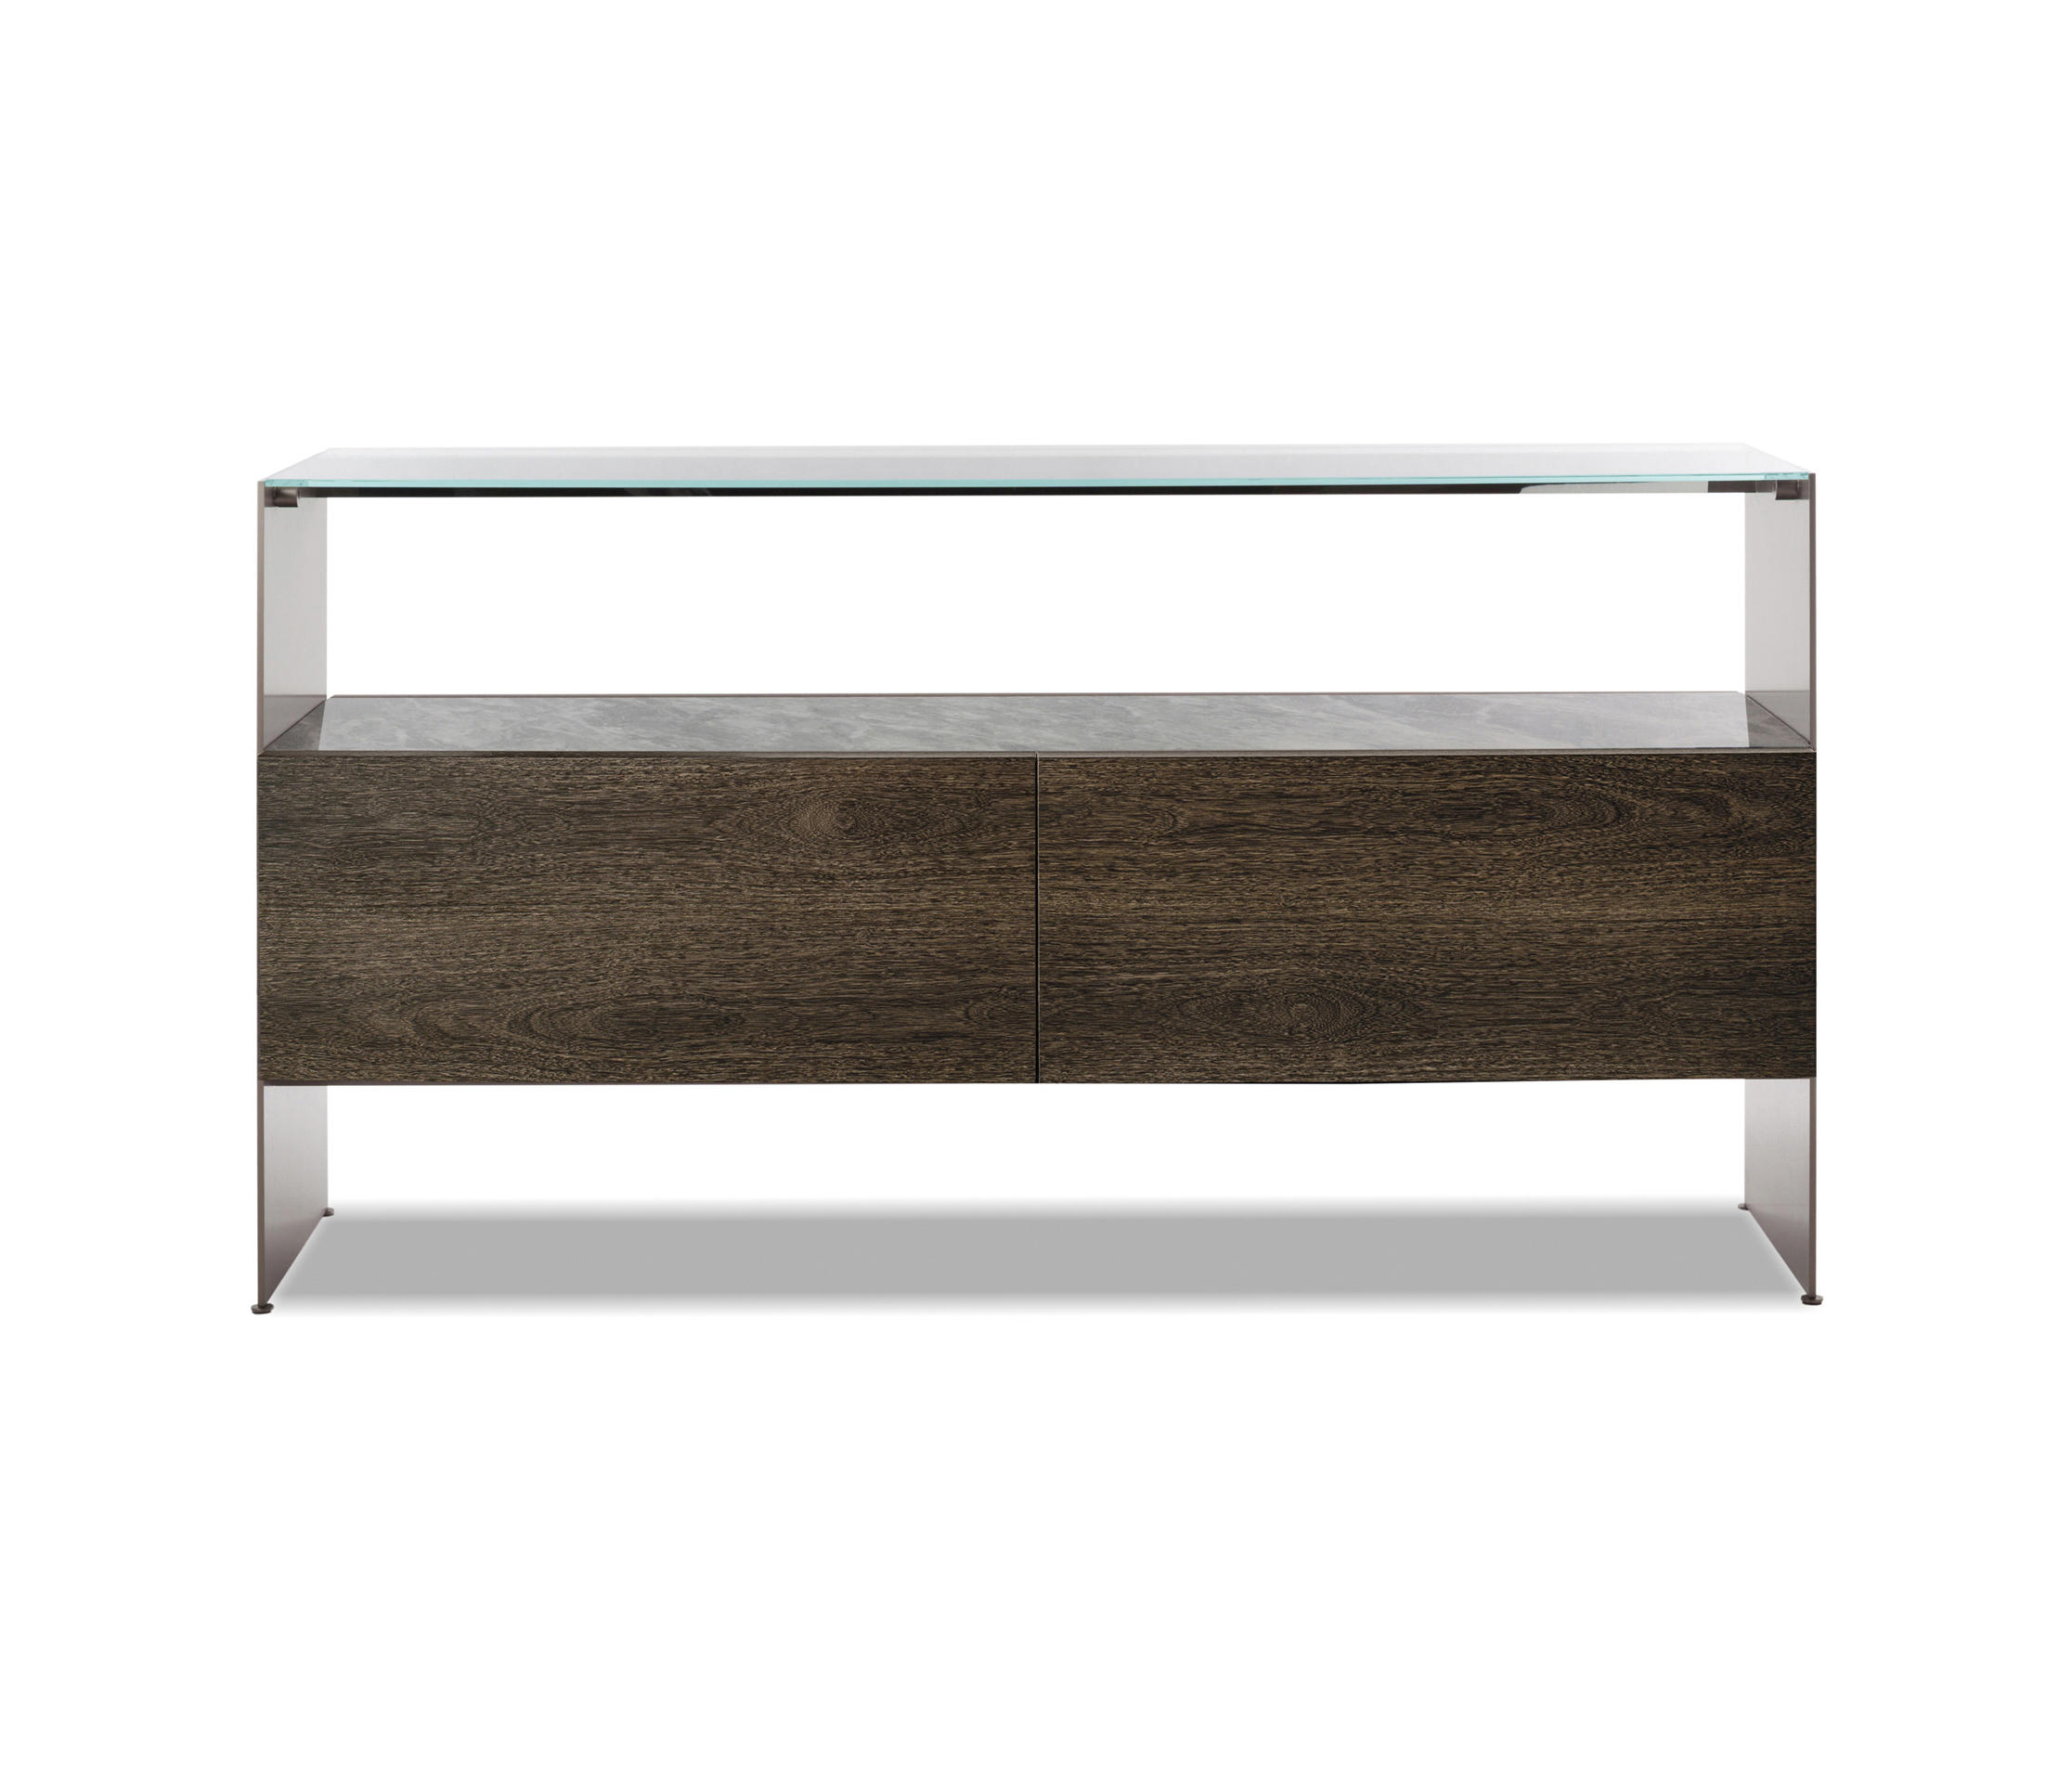 Phenomenal Carson Buffet Sideboards From Minotti Architonic Cjindustries Chair Design For Home Cjindustriesco